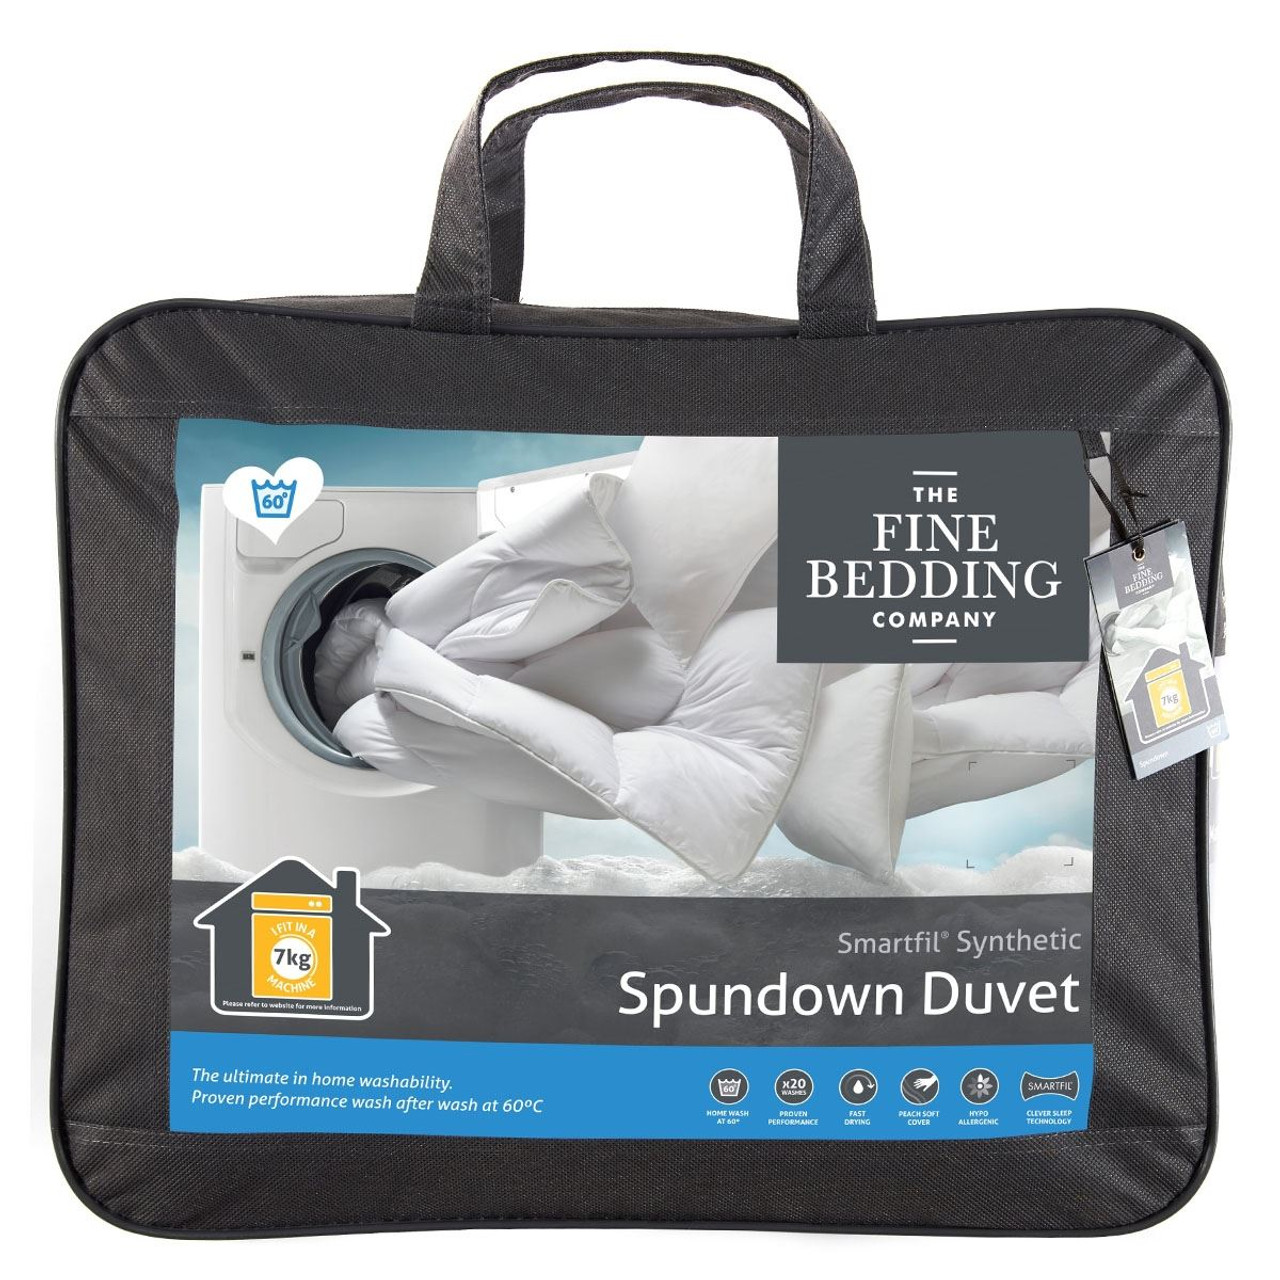 The Fine Bedding Company Spundown Duvet